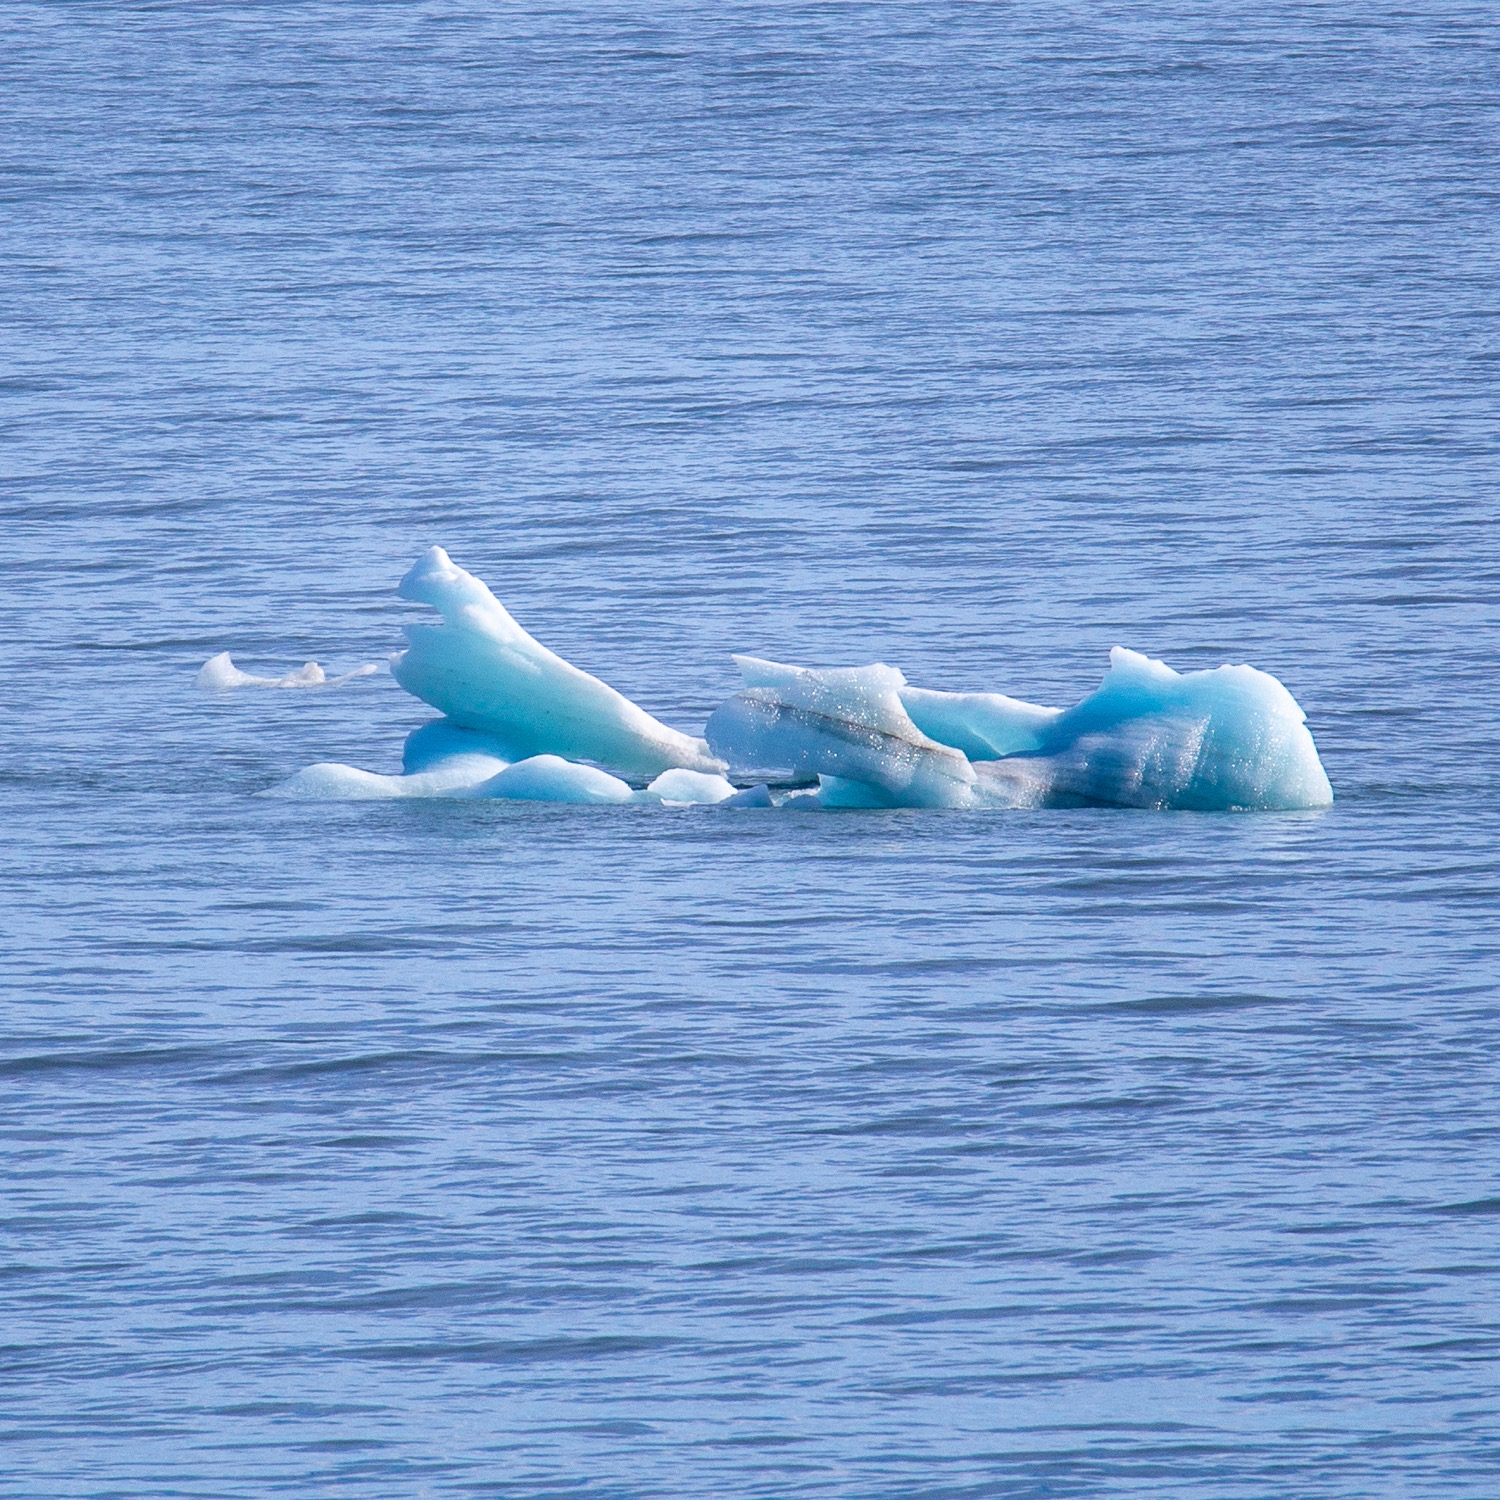 One of the first interesting pieces of ice, floating by...